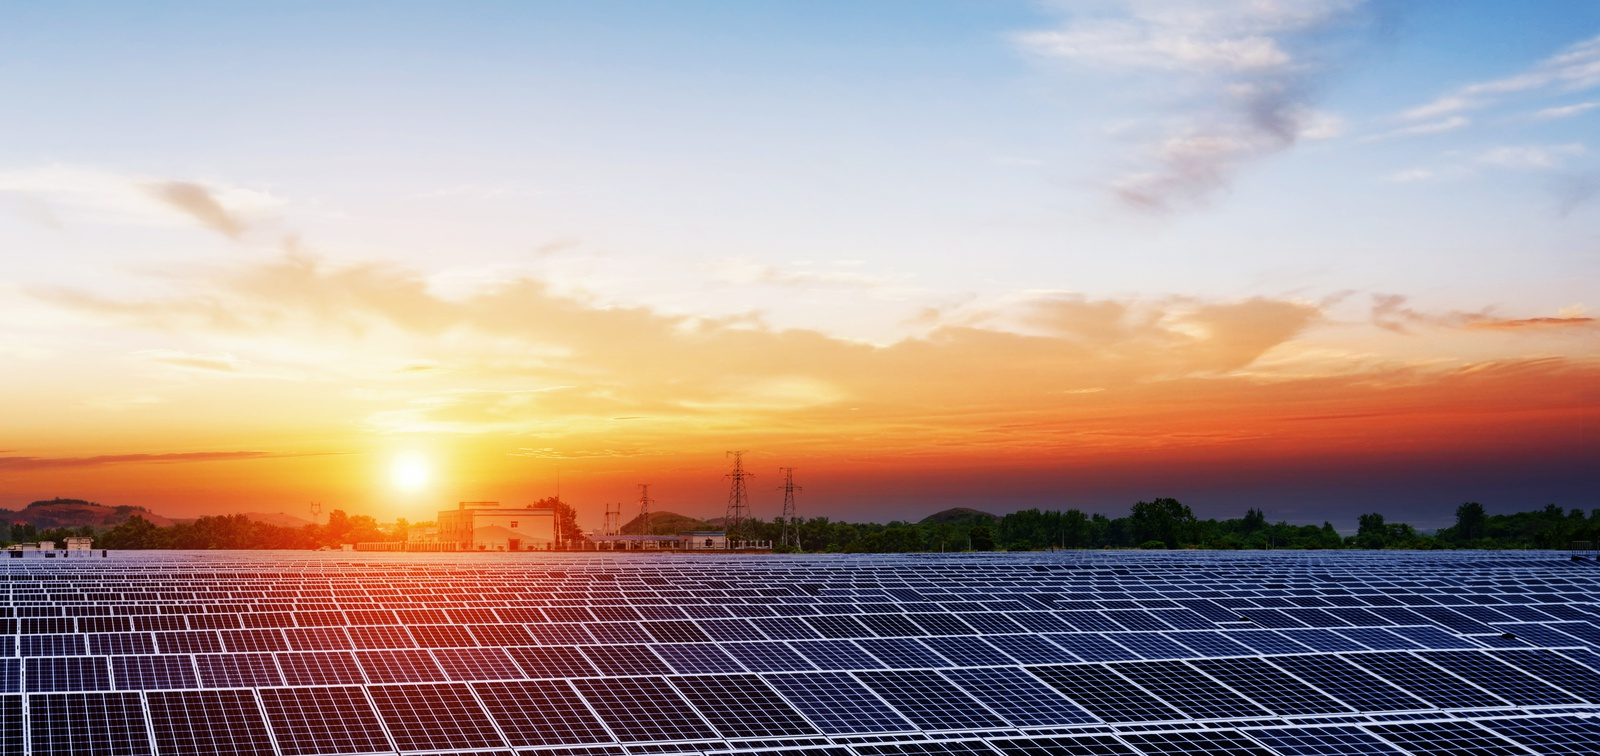 El Paso Electric sees record low solar prices as it secures New Mexico project approvals